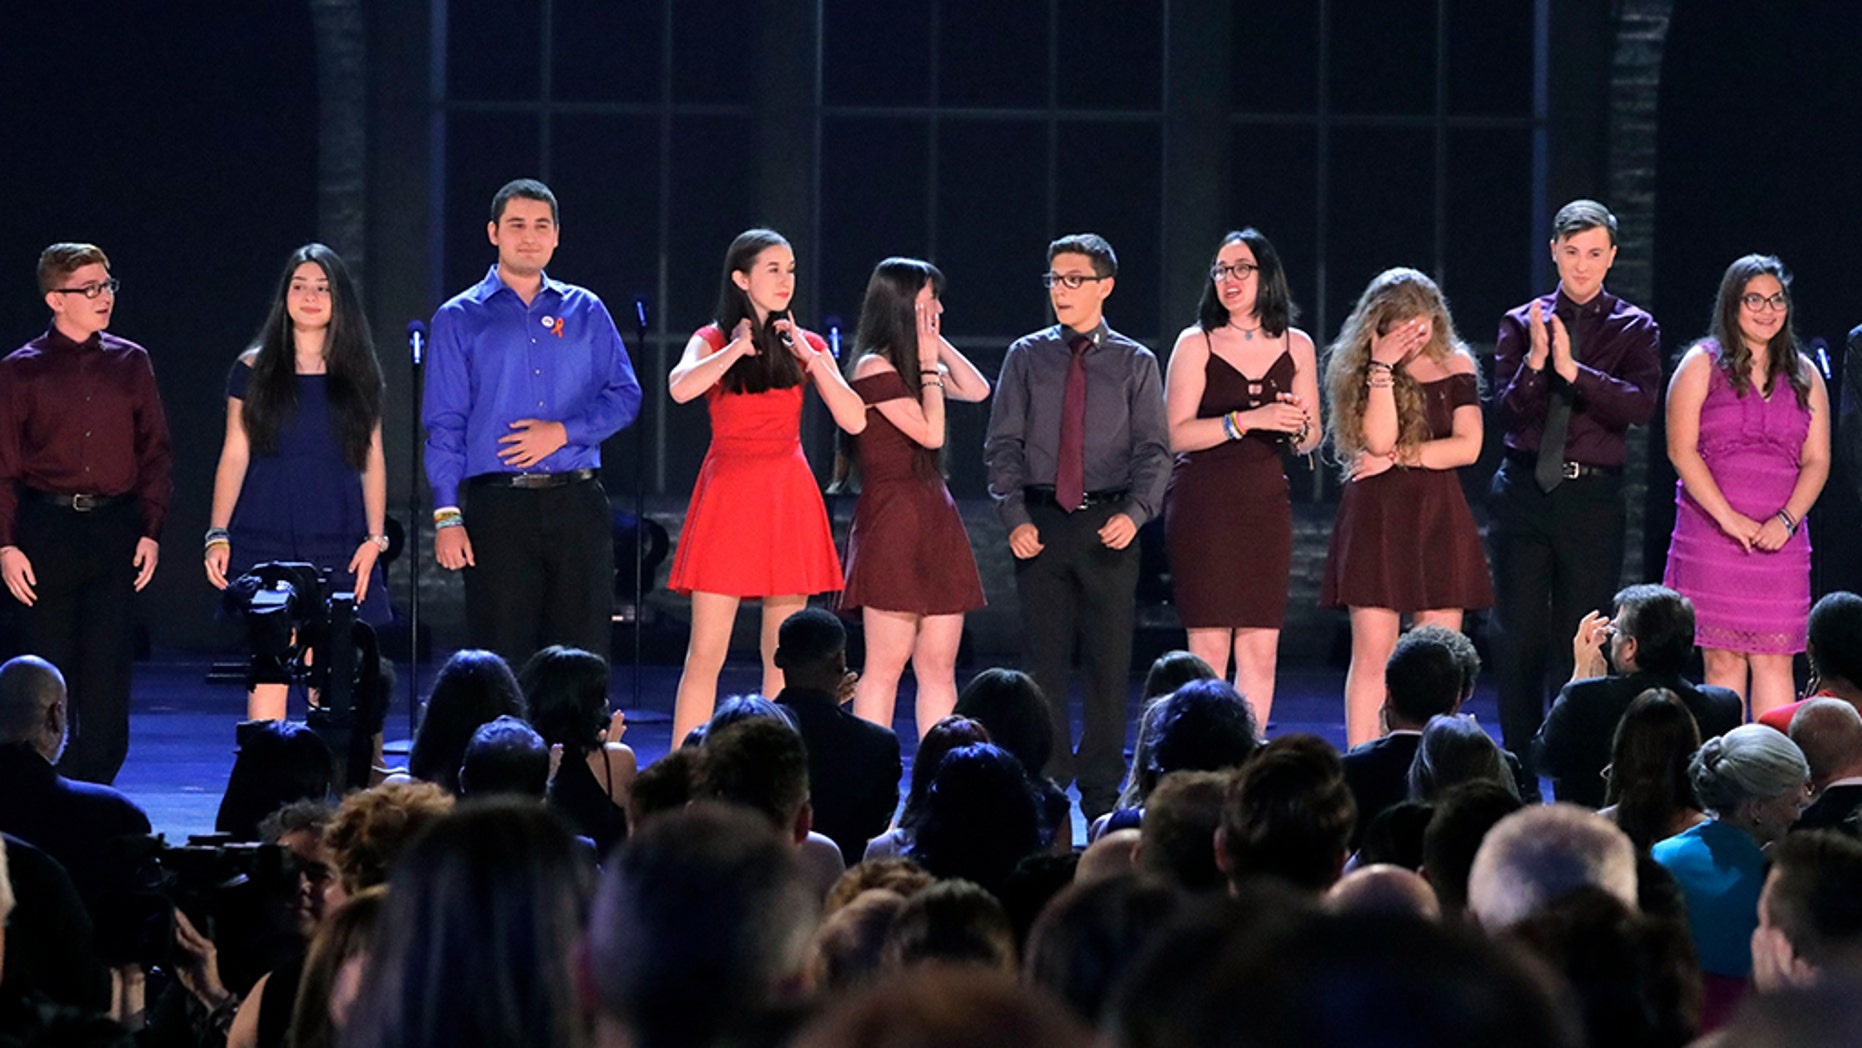 The drama class from Marjory Stoneman Douglas High School performed at the Tony Awards in New York City.